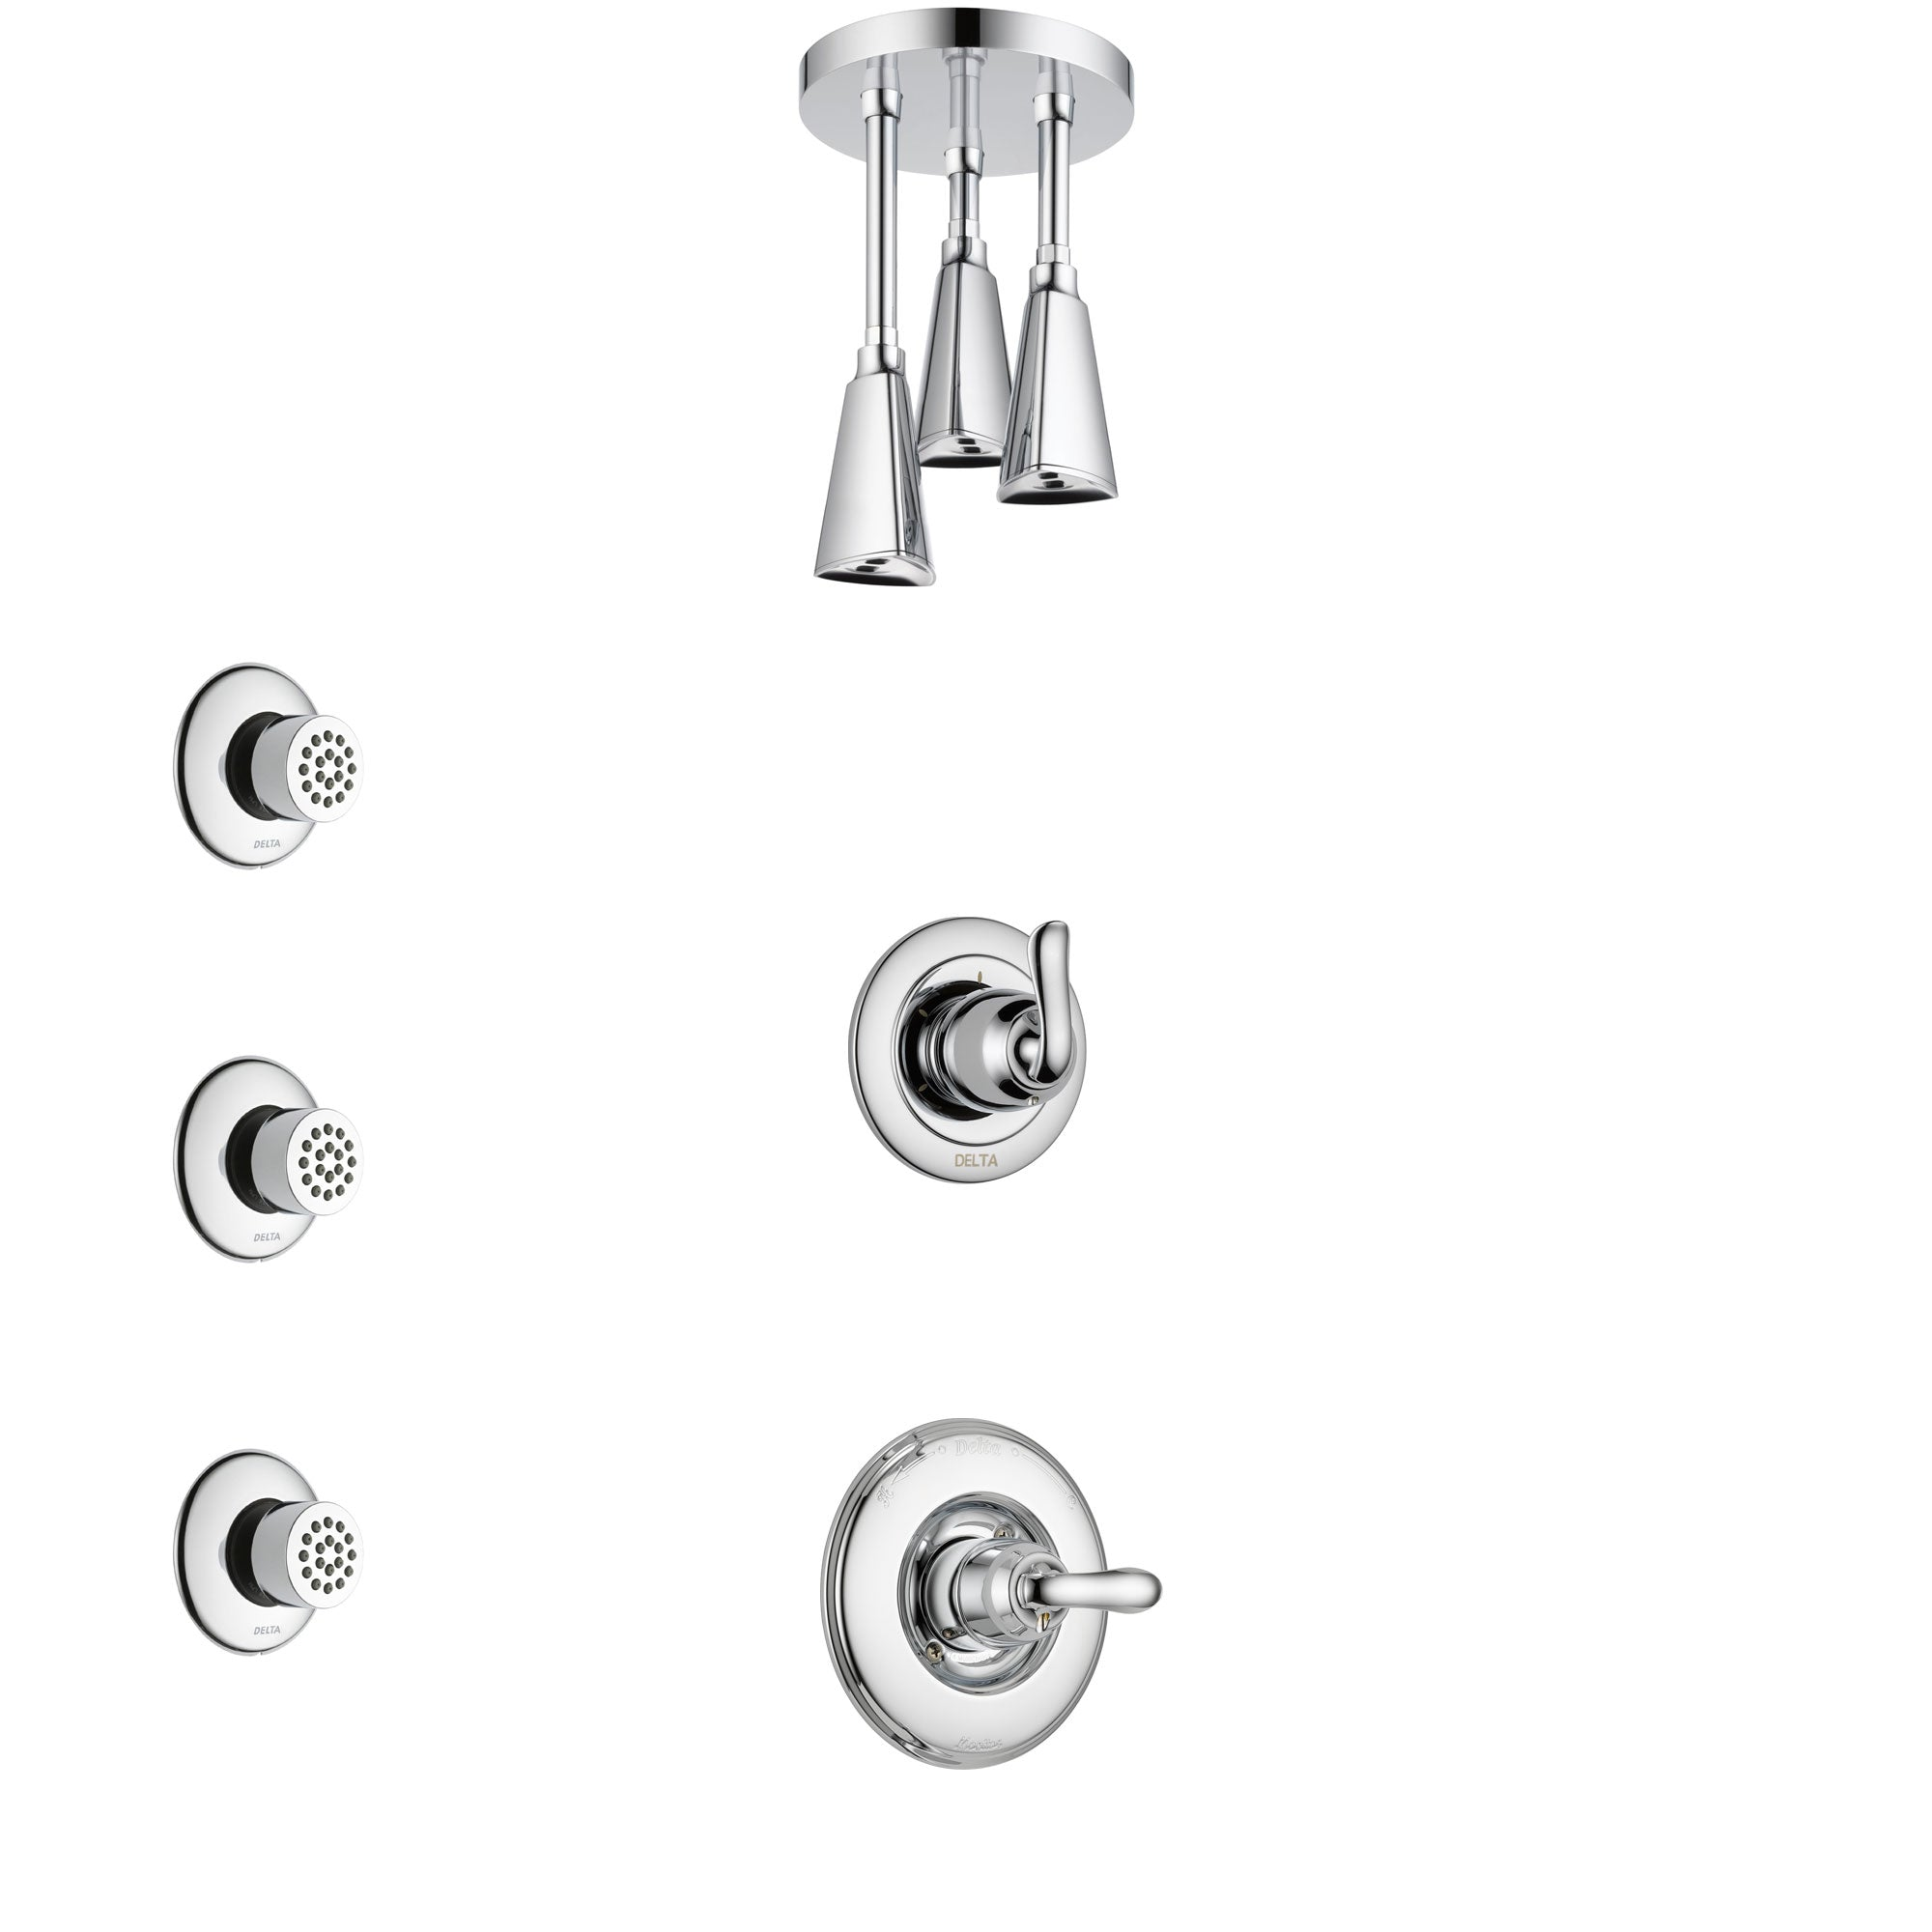 Delta Linden Chrome Finish Shower System with Control Handle, 3-Setting Diverter, Ceiling Mount Showerhead, and 3 Body Sprays SS14946